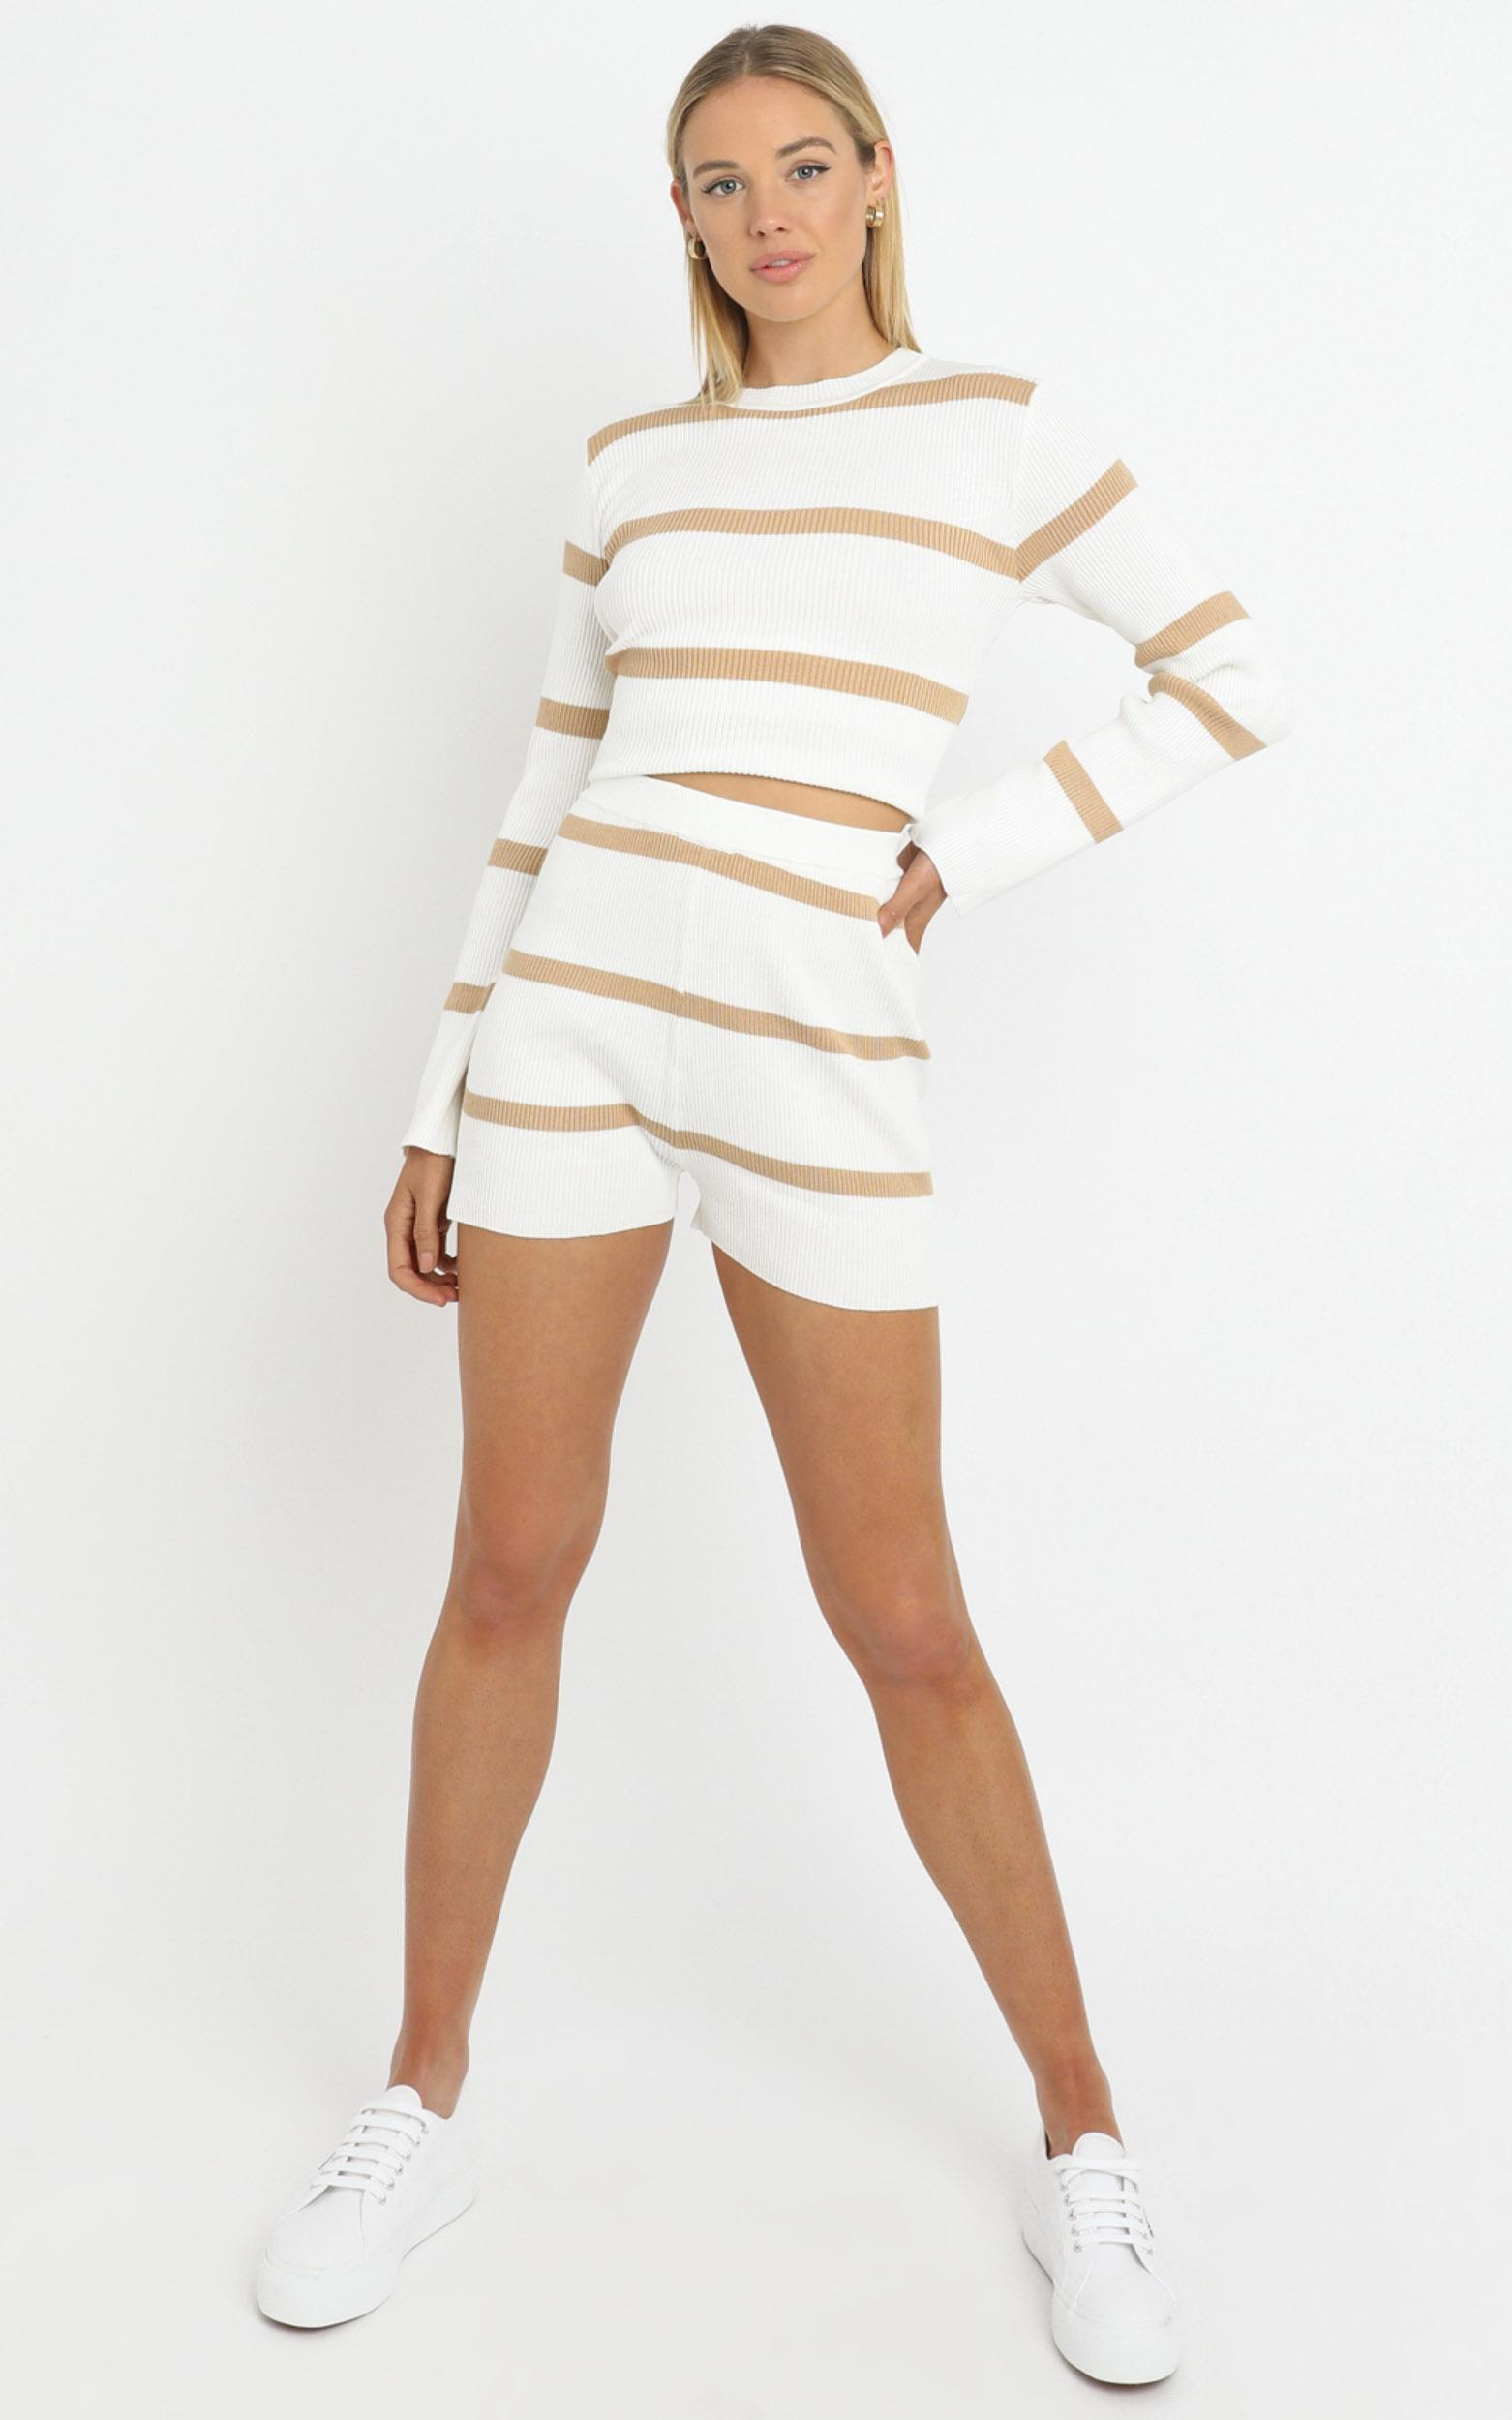 Jennings Knit Two Piece Set Beige Stripe - L/XL, White, hi-res image number null